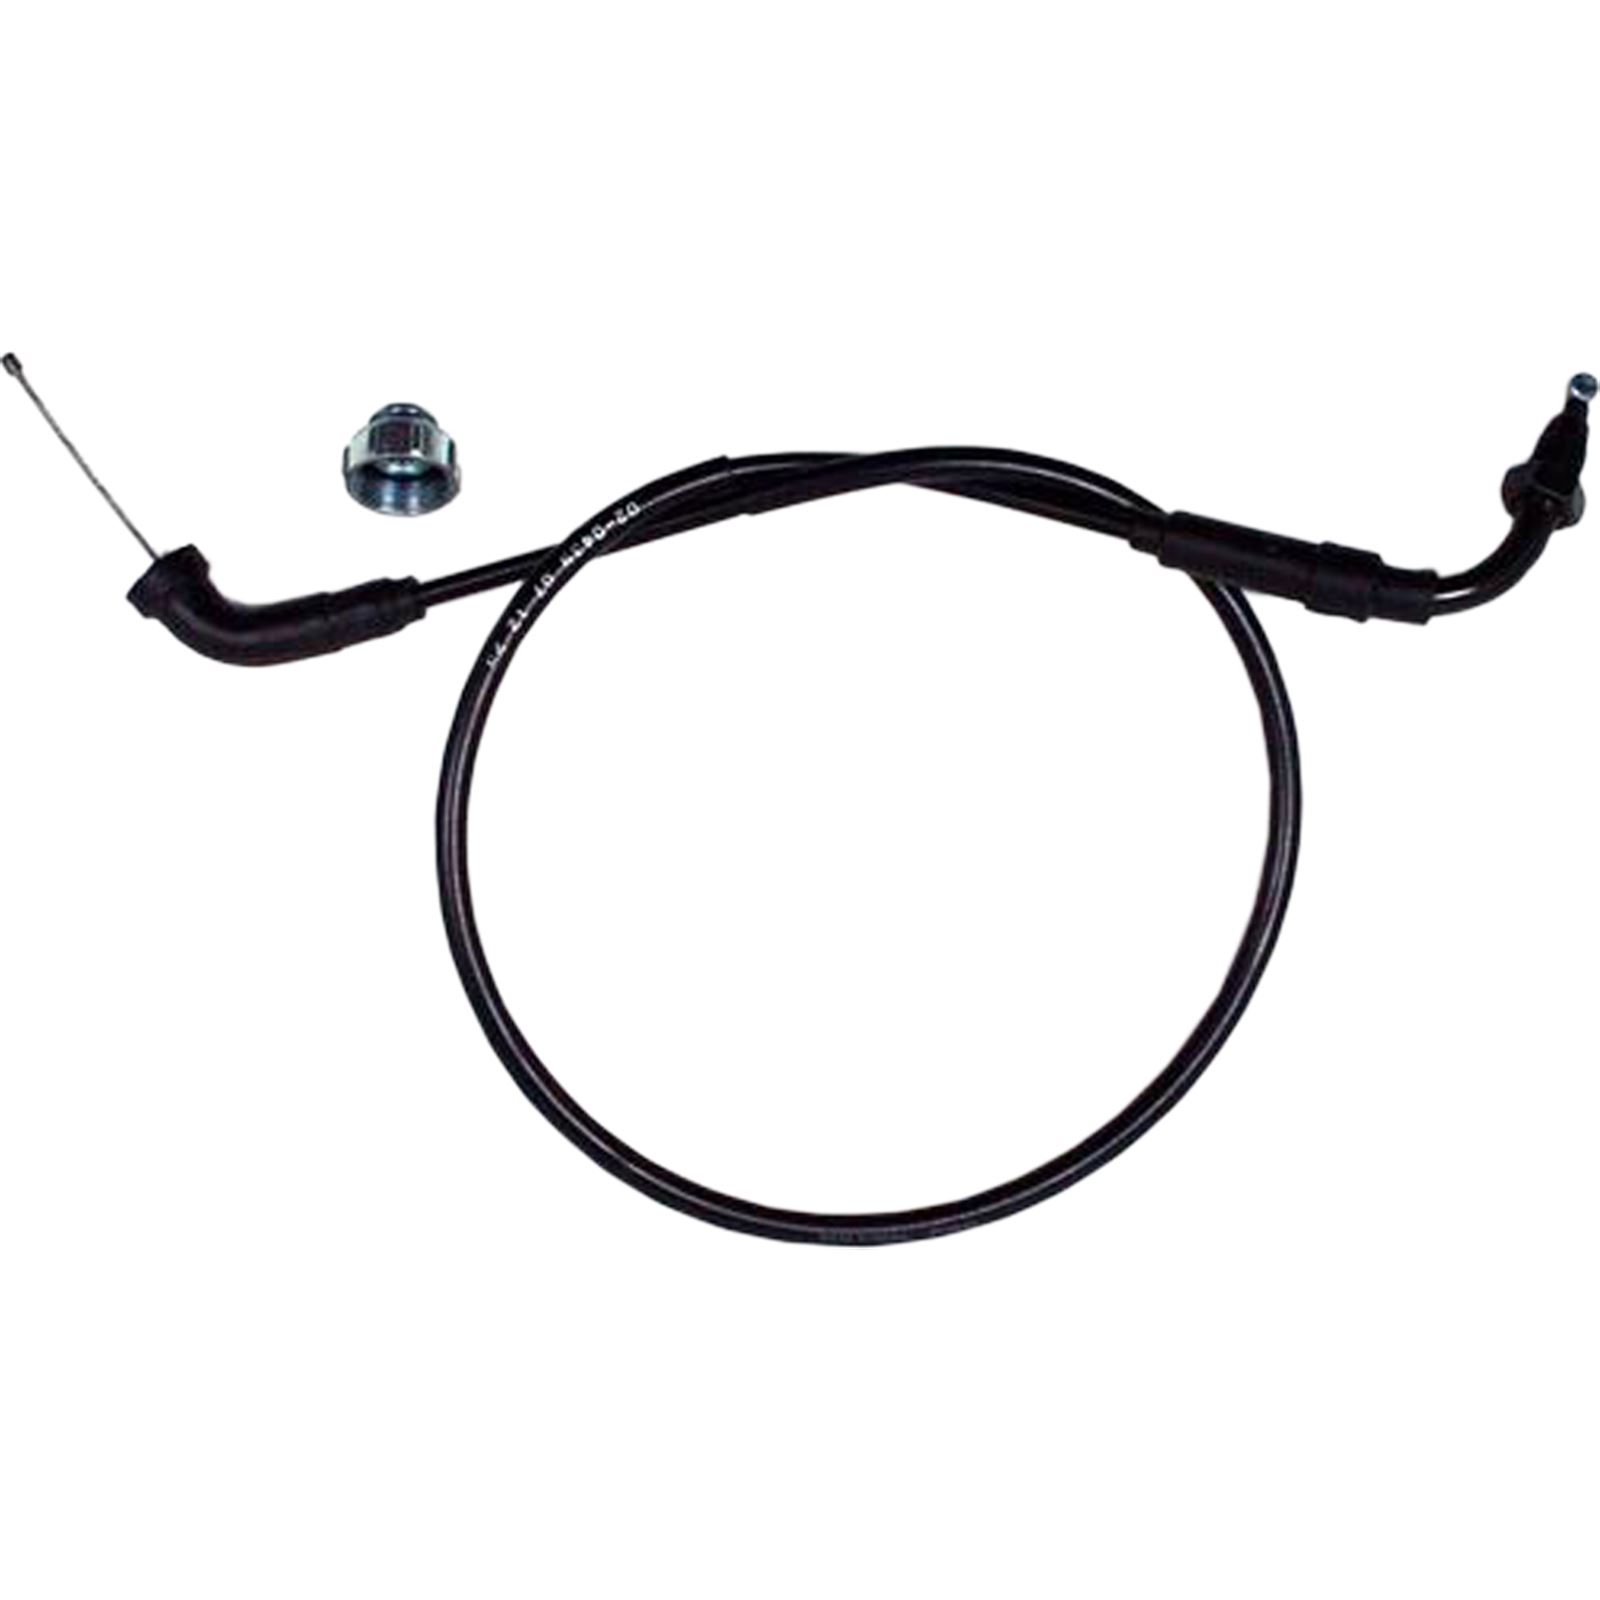 Motion Pro Motocross/Off-Road Throttle Cable